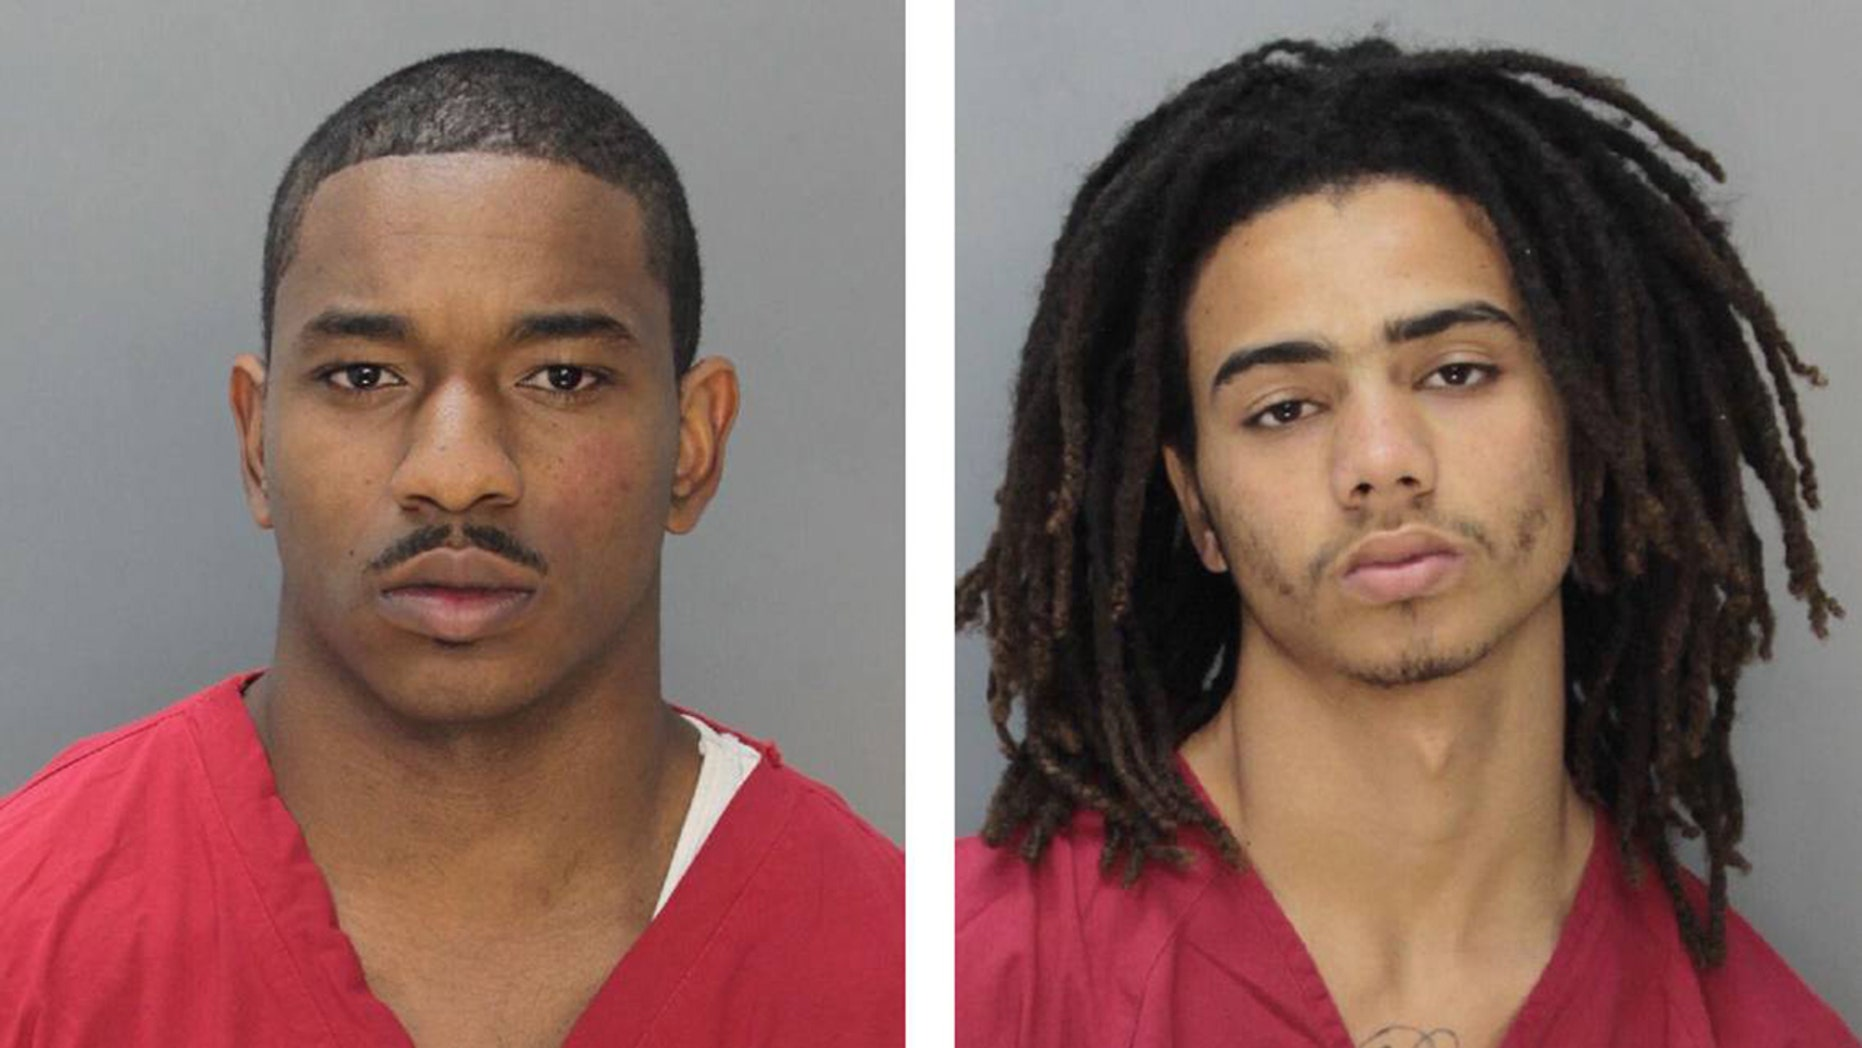 Anthony Clinch, 19, and Yaairness Rashad Bryant, 21, were released two days after they were arrested in connection to a fatal shooting last month.